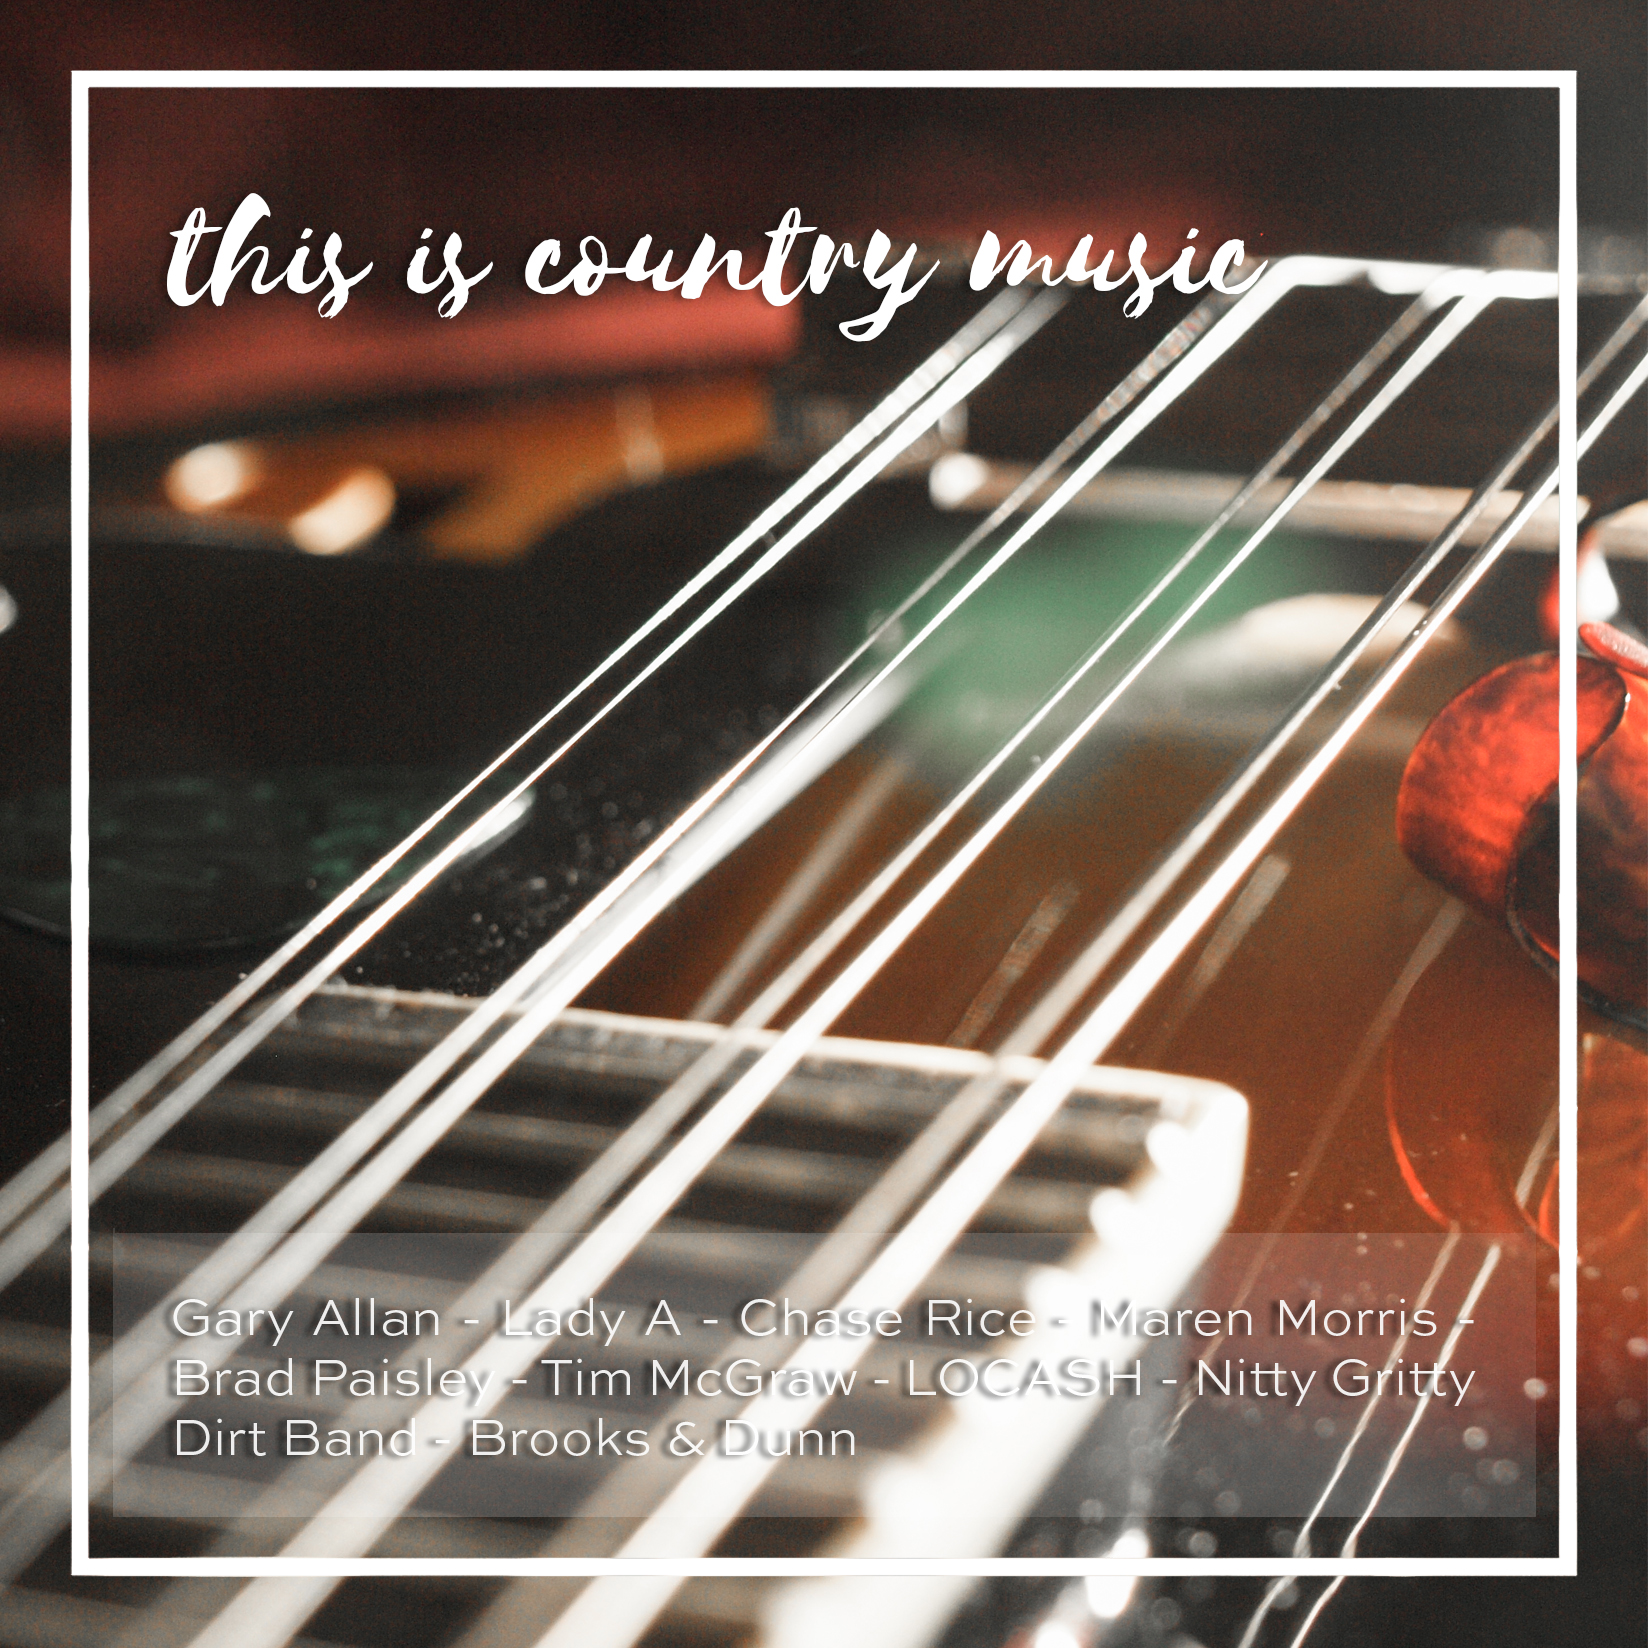 Weekly Playlist 13 - this is country music